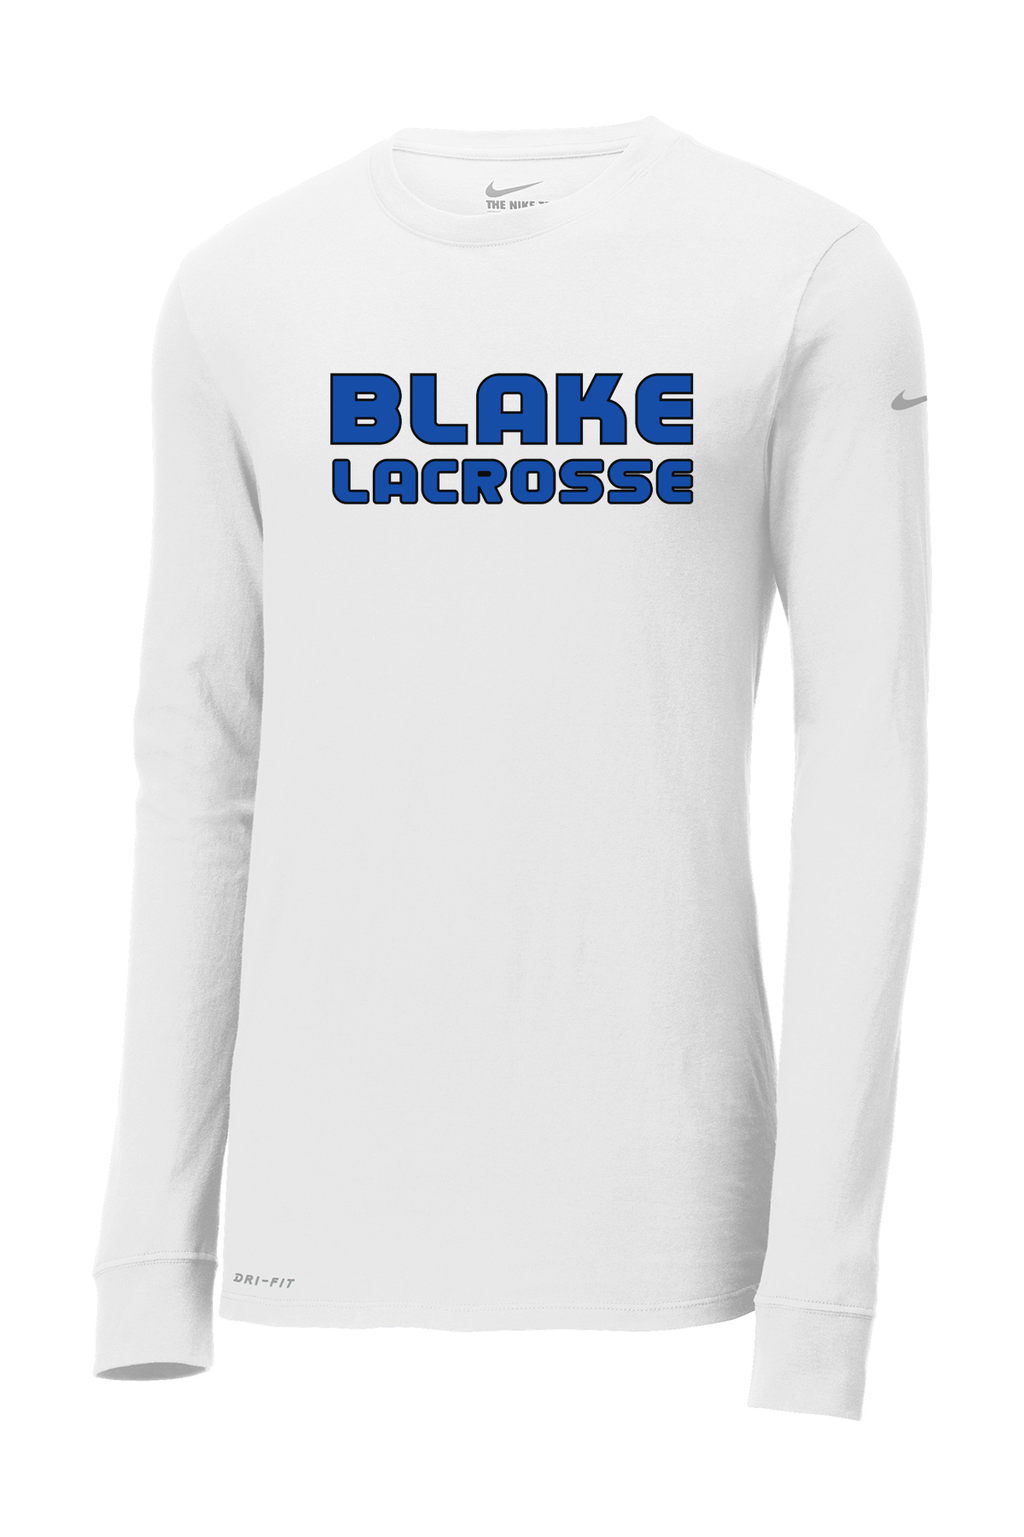 Blake Lacrosse Nike Dri-FIT Long Sleeve Performance Shirt